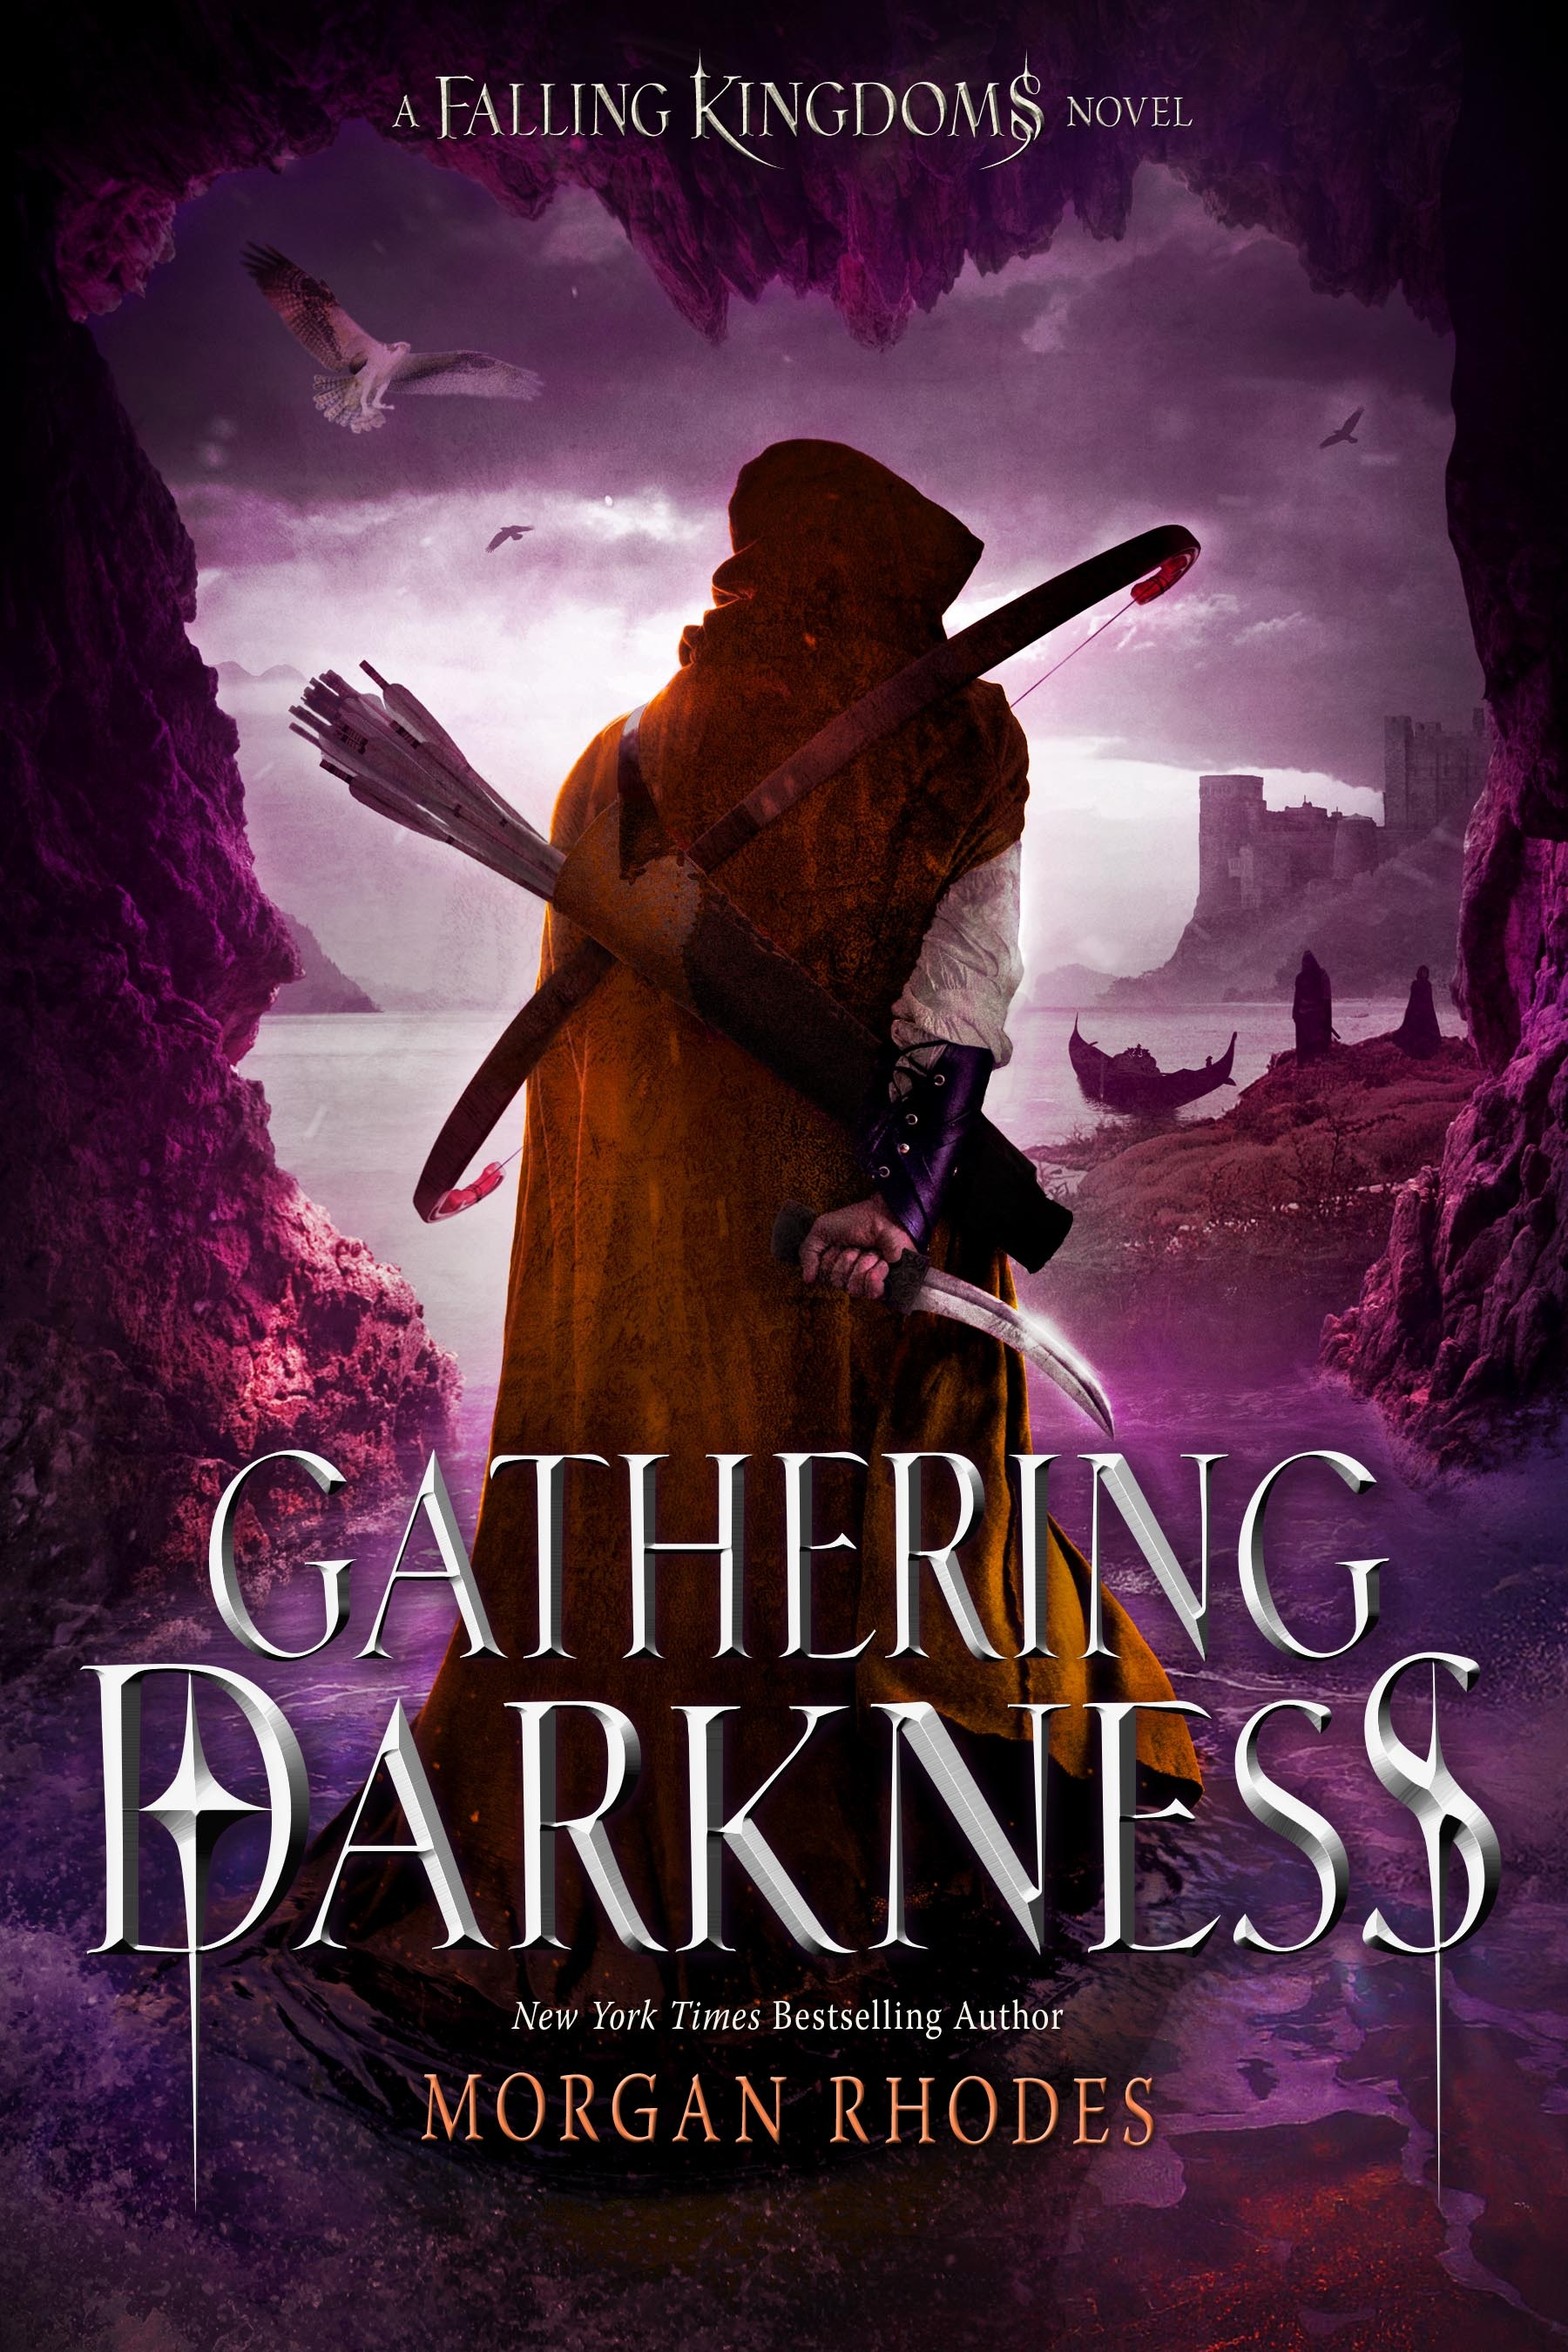 Gathering Darkness (Falling Kingdoms #3) by Morgan Rhodes